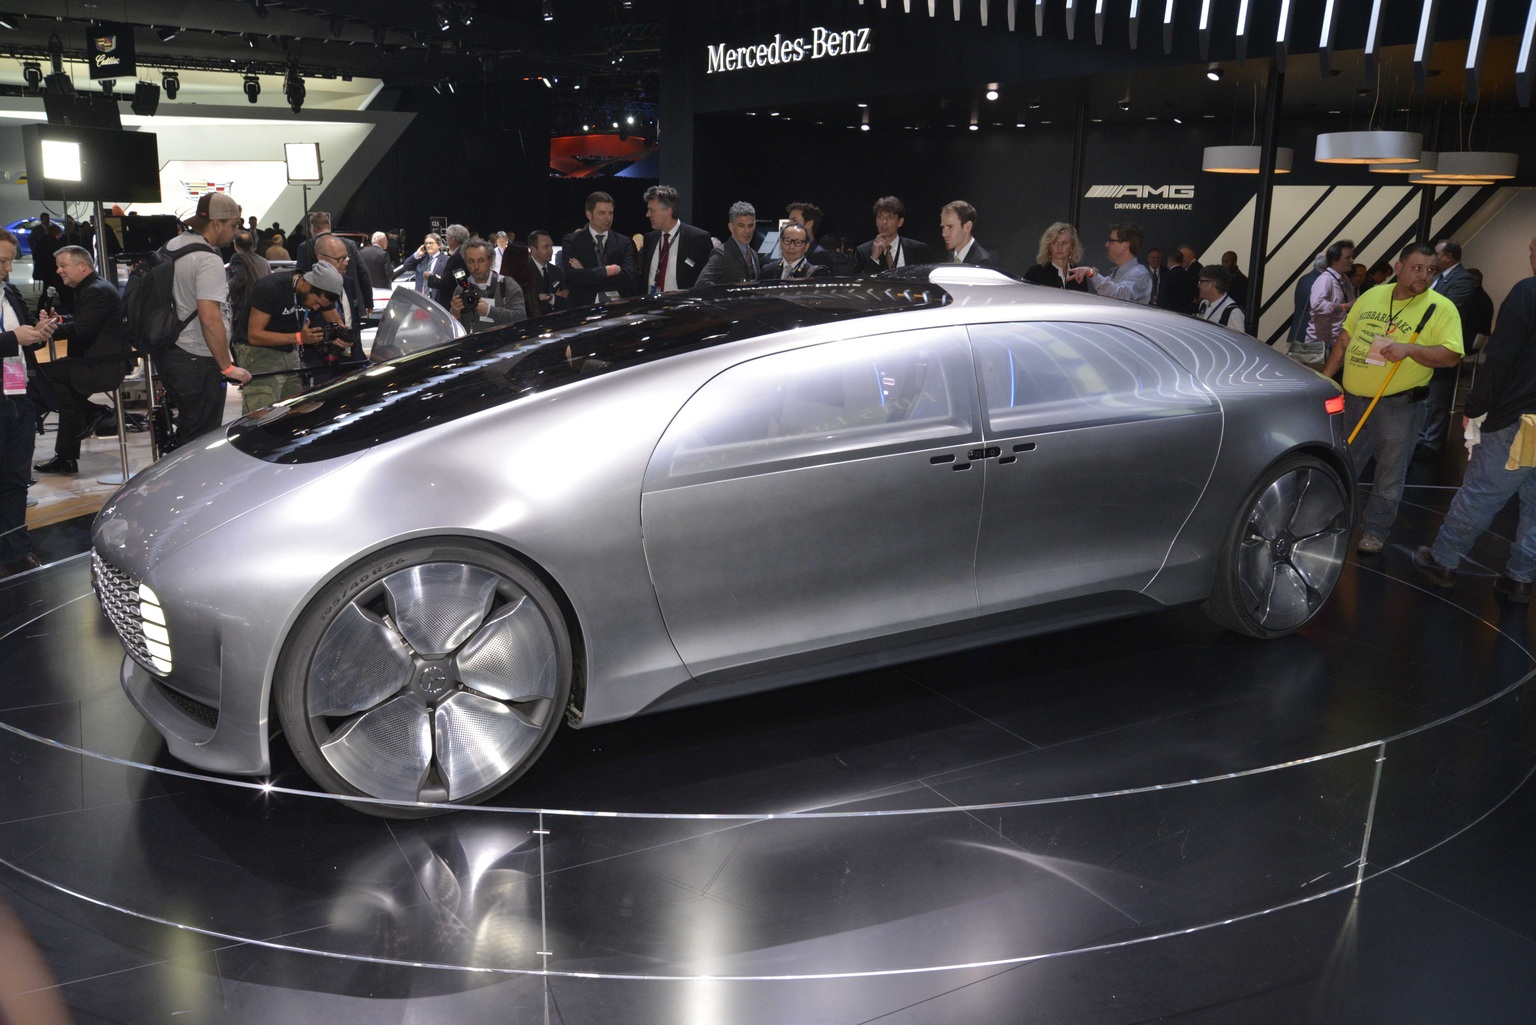 2015 mercedes benz f 015 luxury in motion for Mercedes benz f 015 price